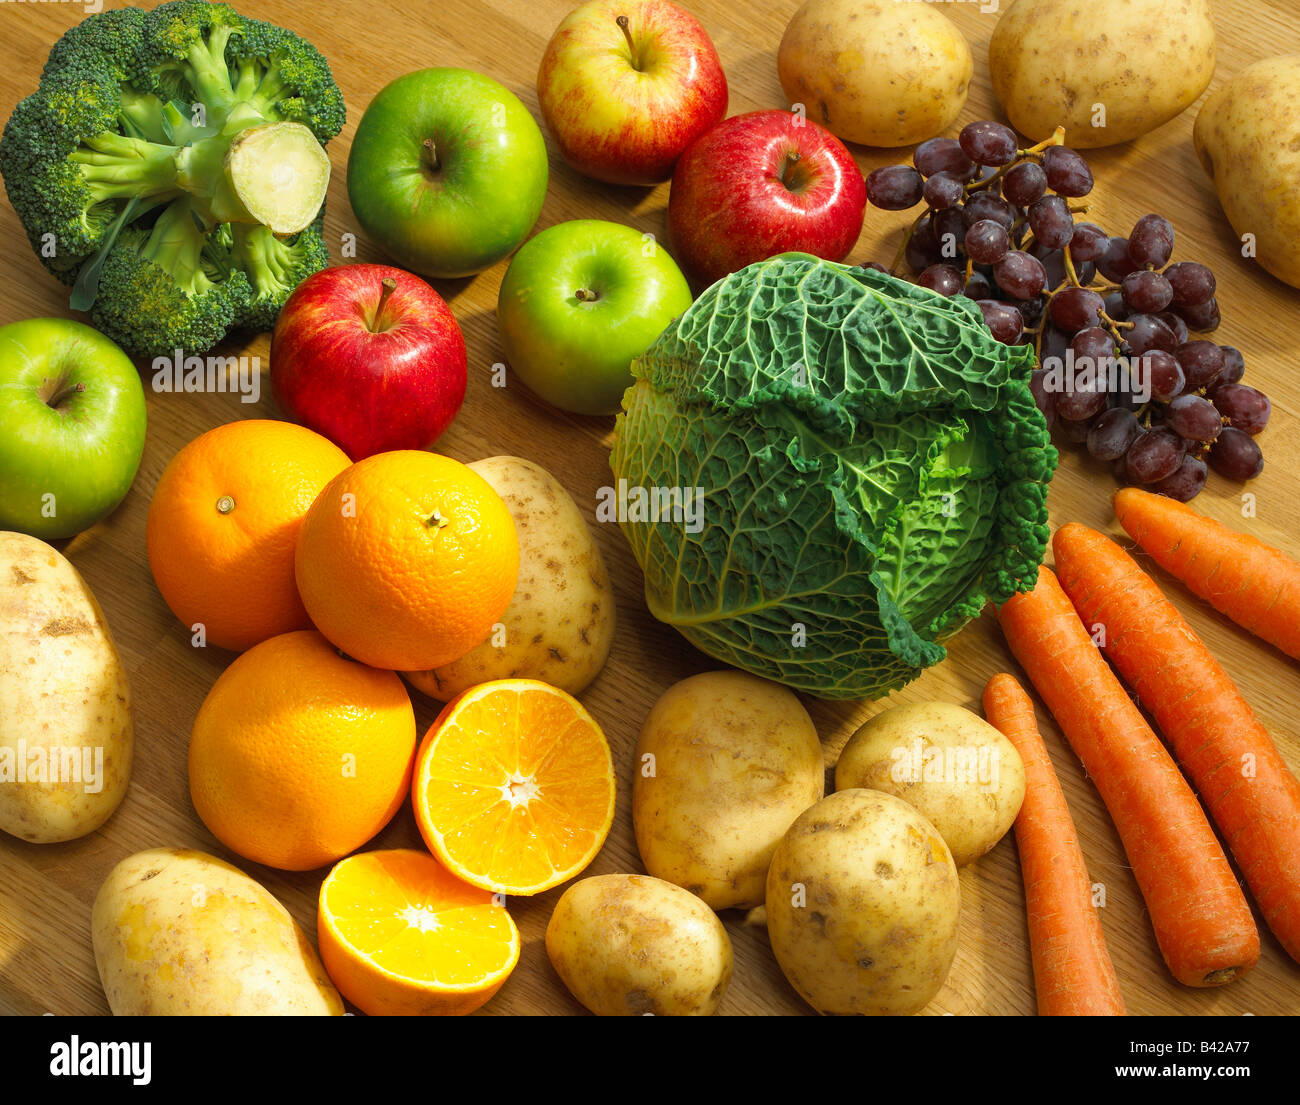 SELECTION OF FRESH FRUIT AND VEGETABLES WITH APPLES ORANGES GRAPES POTATOES CARROTS BROCOLLI AND CABBAGE - Stock Image